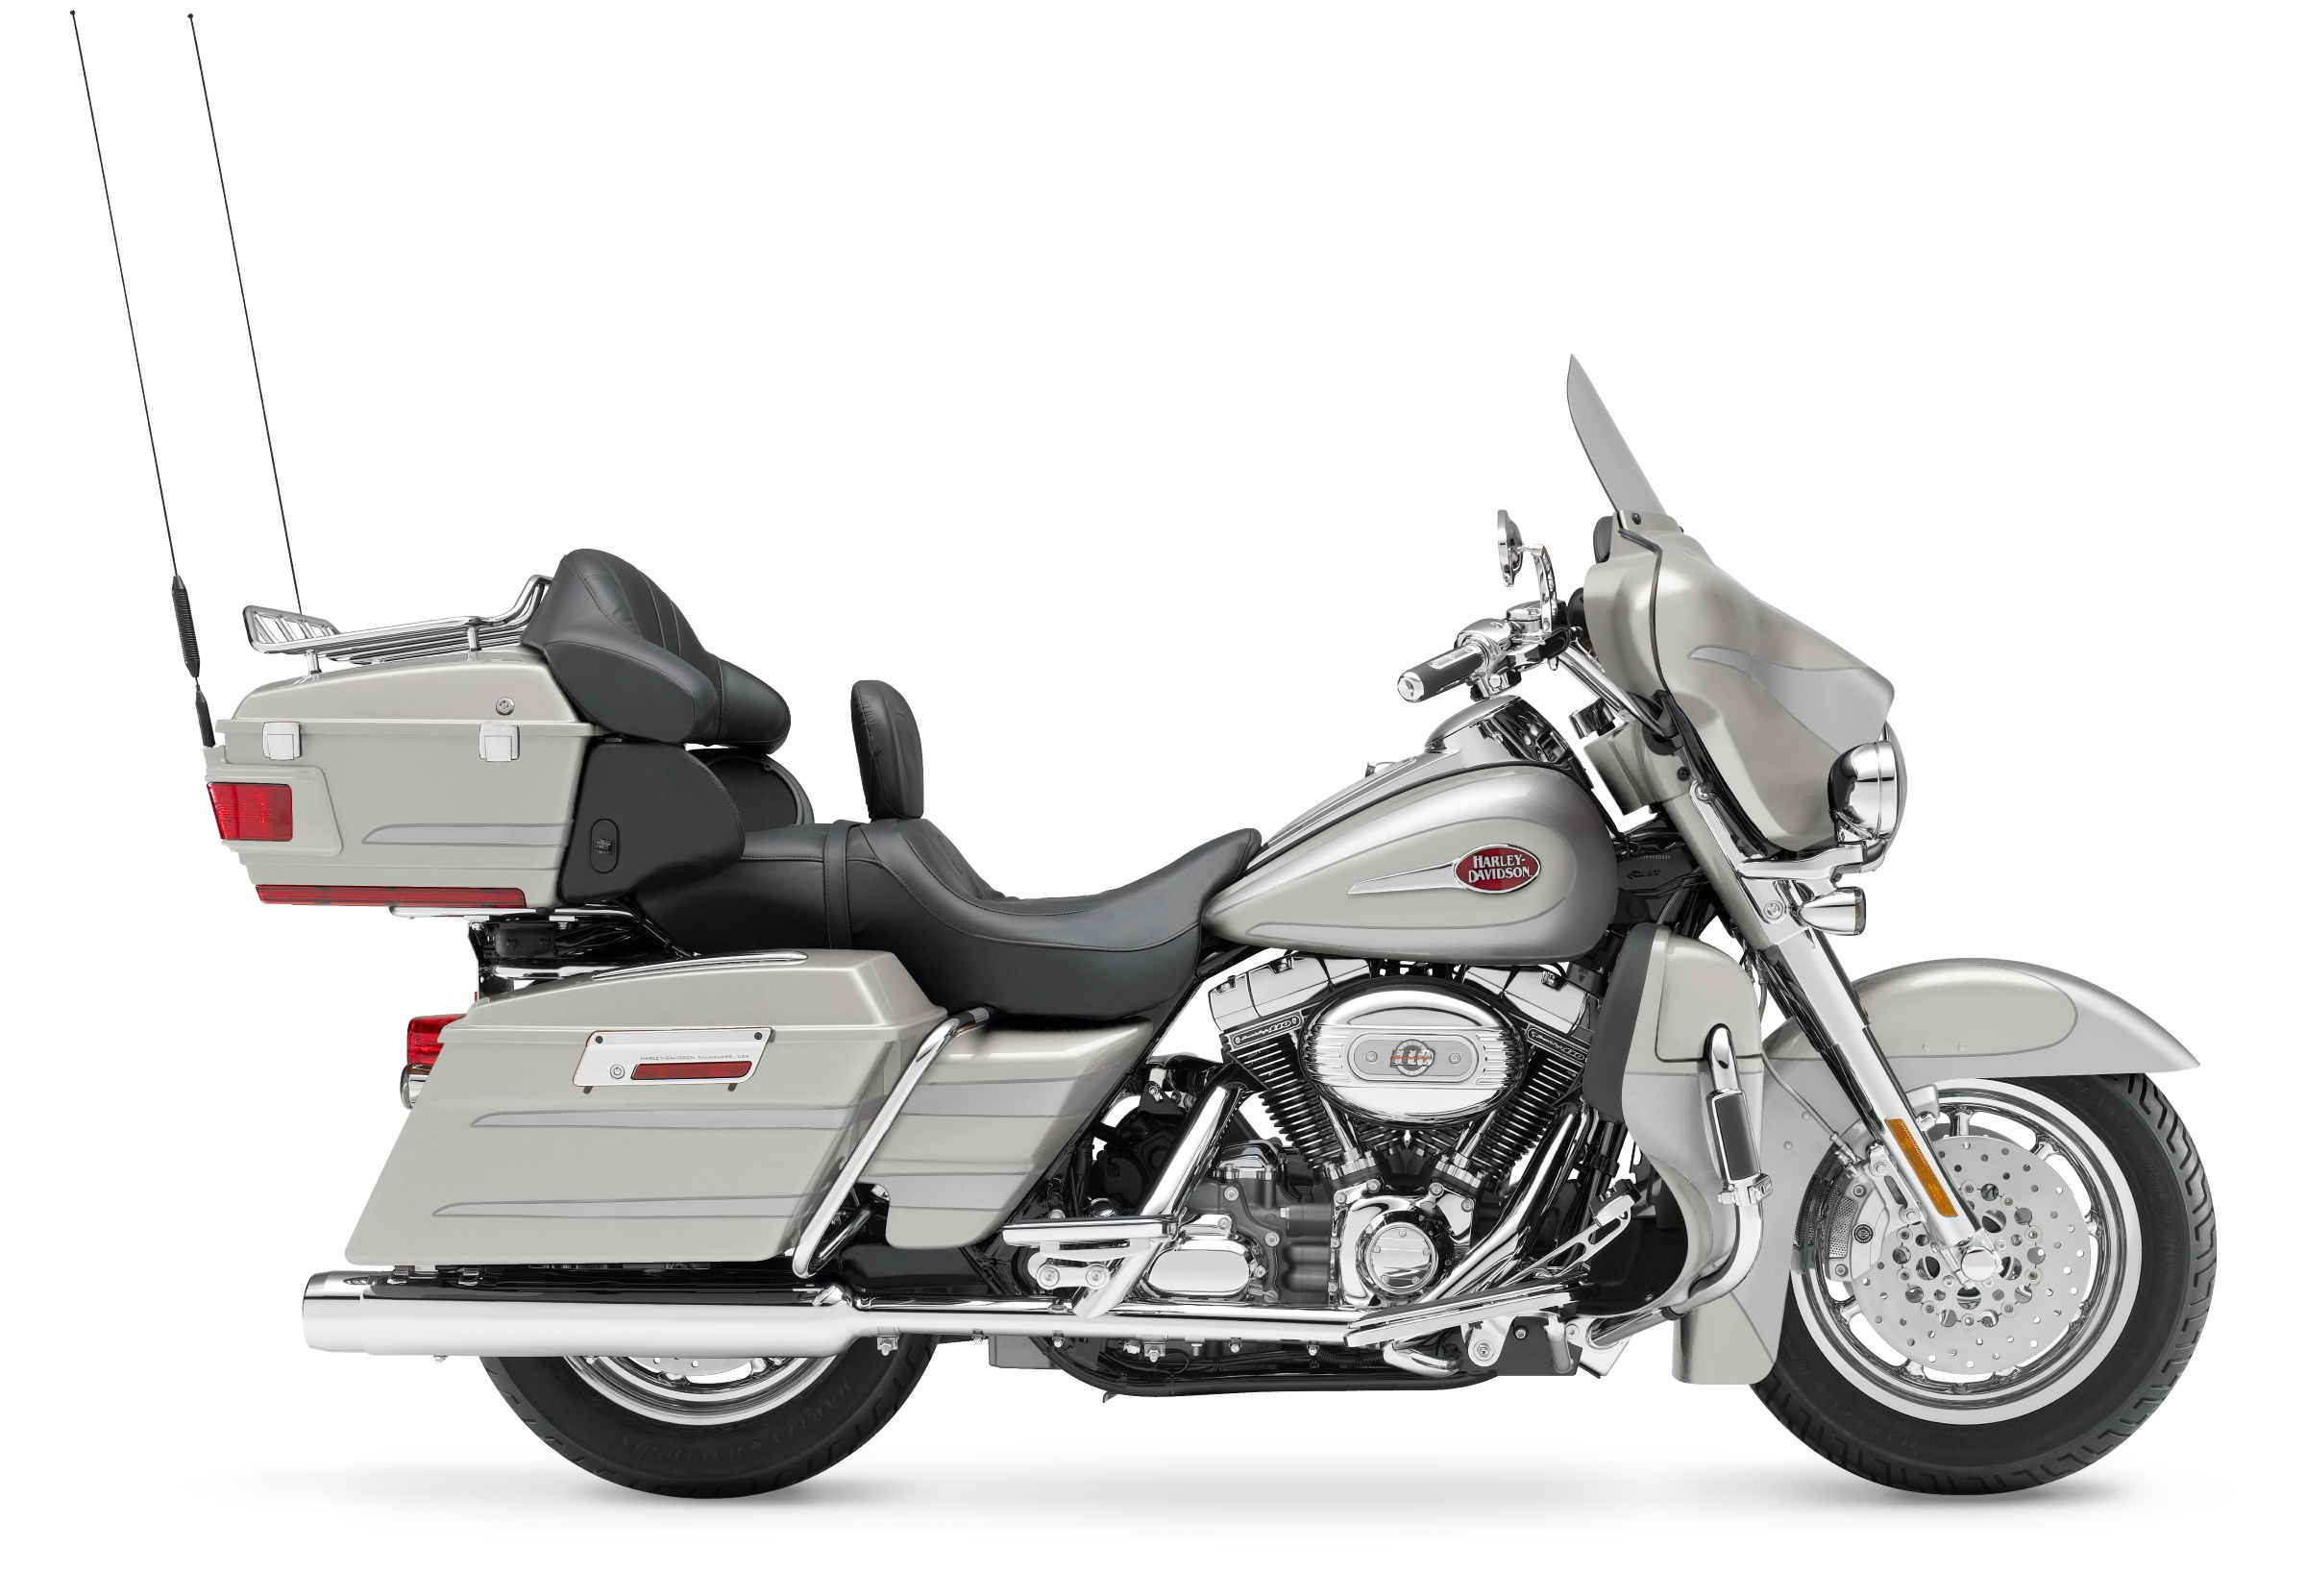 2008 harley davidson flhtcuse3 screamin eagle ultra classic electra rh topspeed com 2007 harley ultra classic owners manual 2006 harley ultra classic owners manual